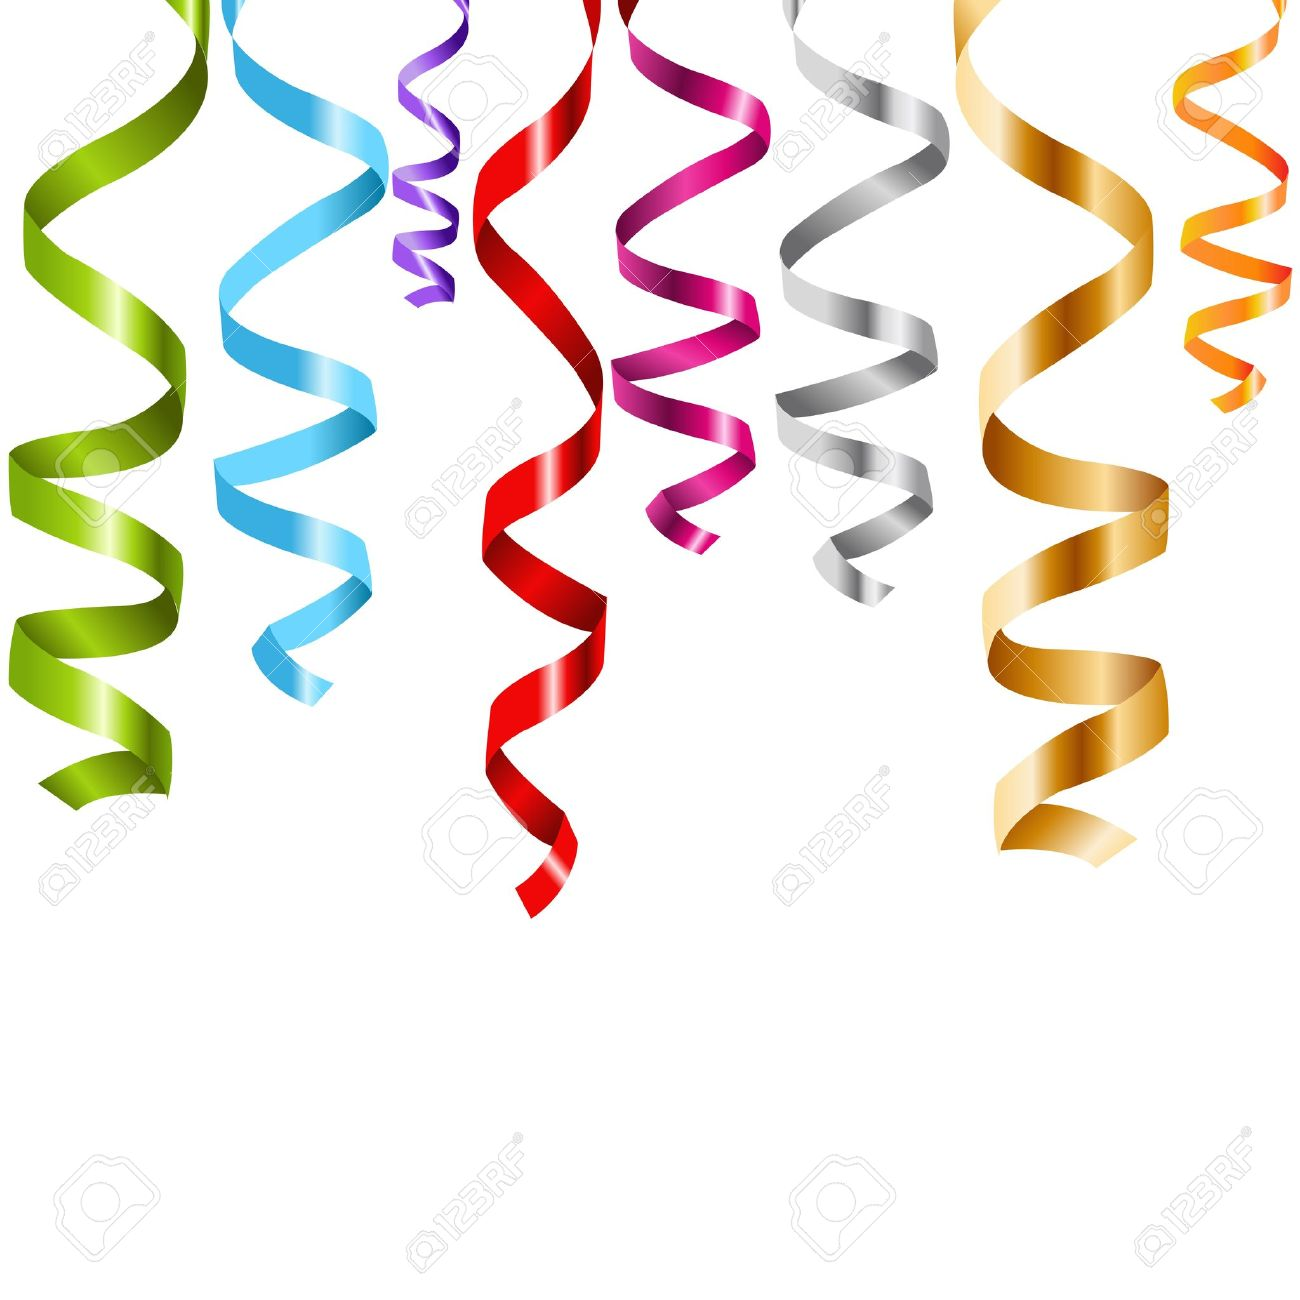 Streamers clipart spiral. Cliparts free download best